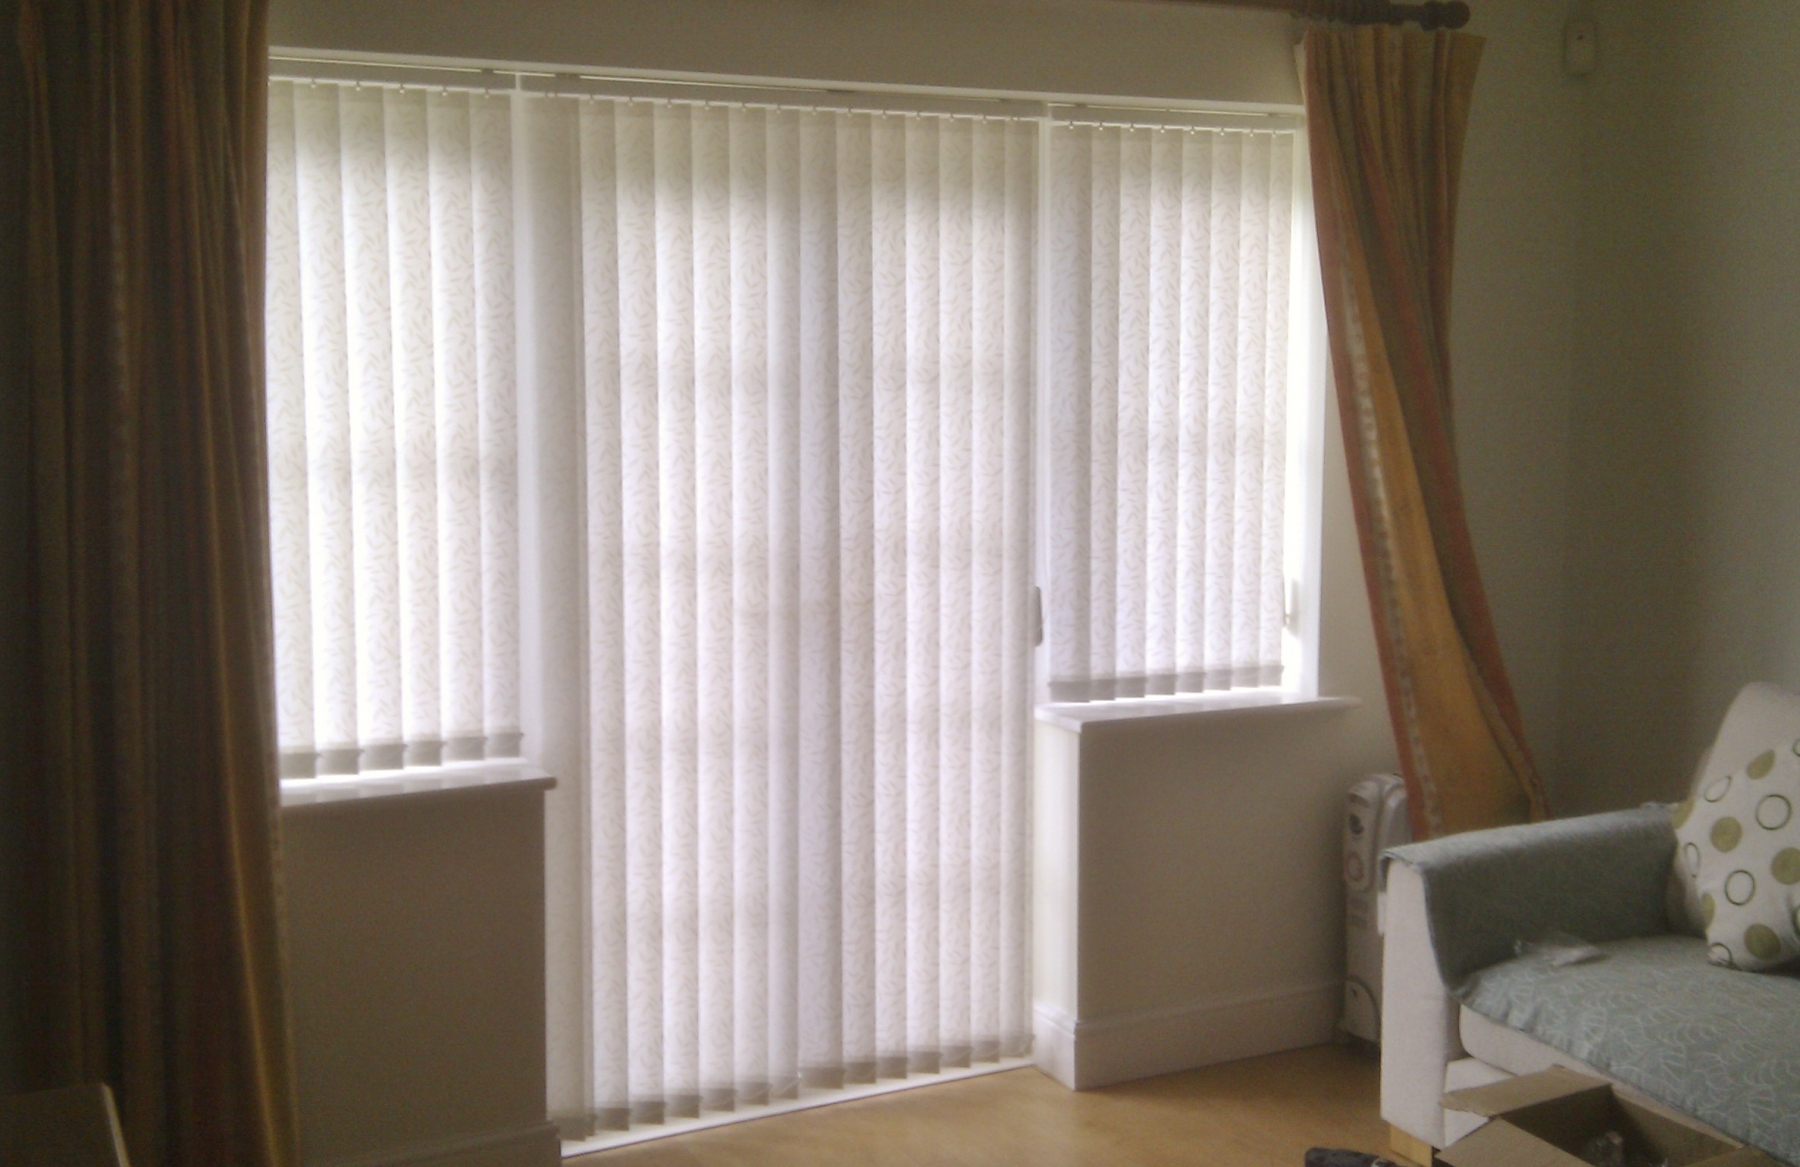 brown-loose-curtain-combined-with-simple-white-blinds-as-well-as-vertical-blinds-and-curtains-and-vertical-curtains-and-blinds